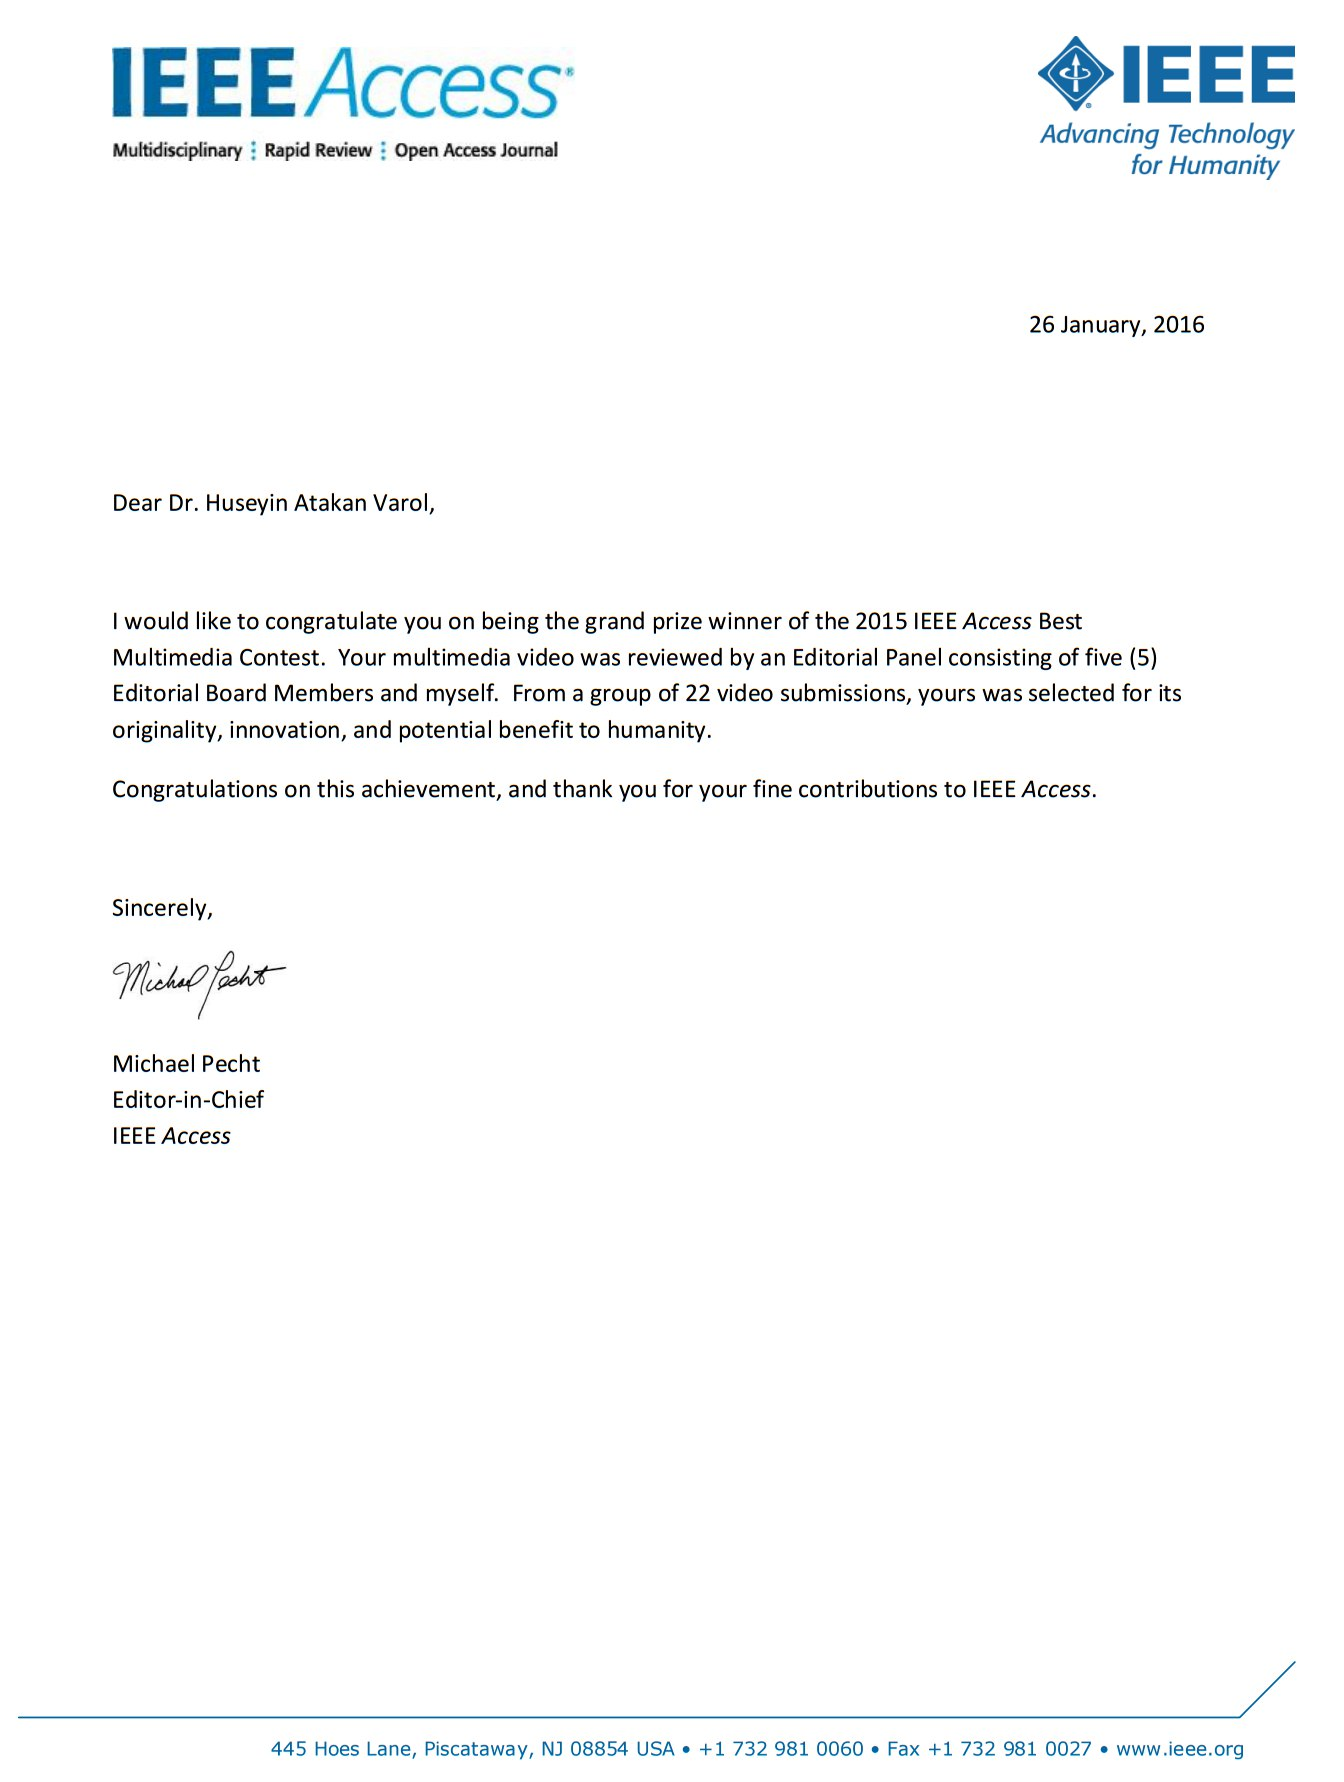 Letter from IEEE